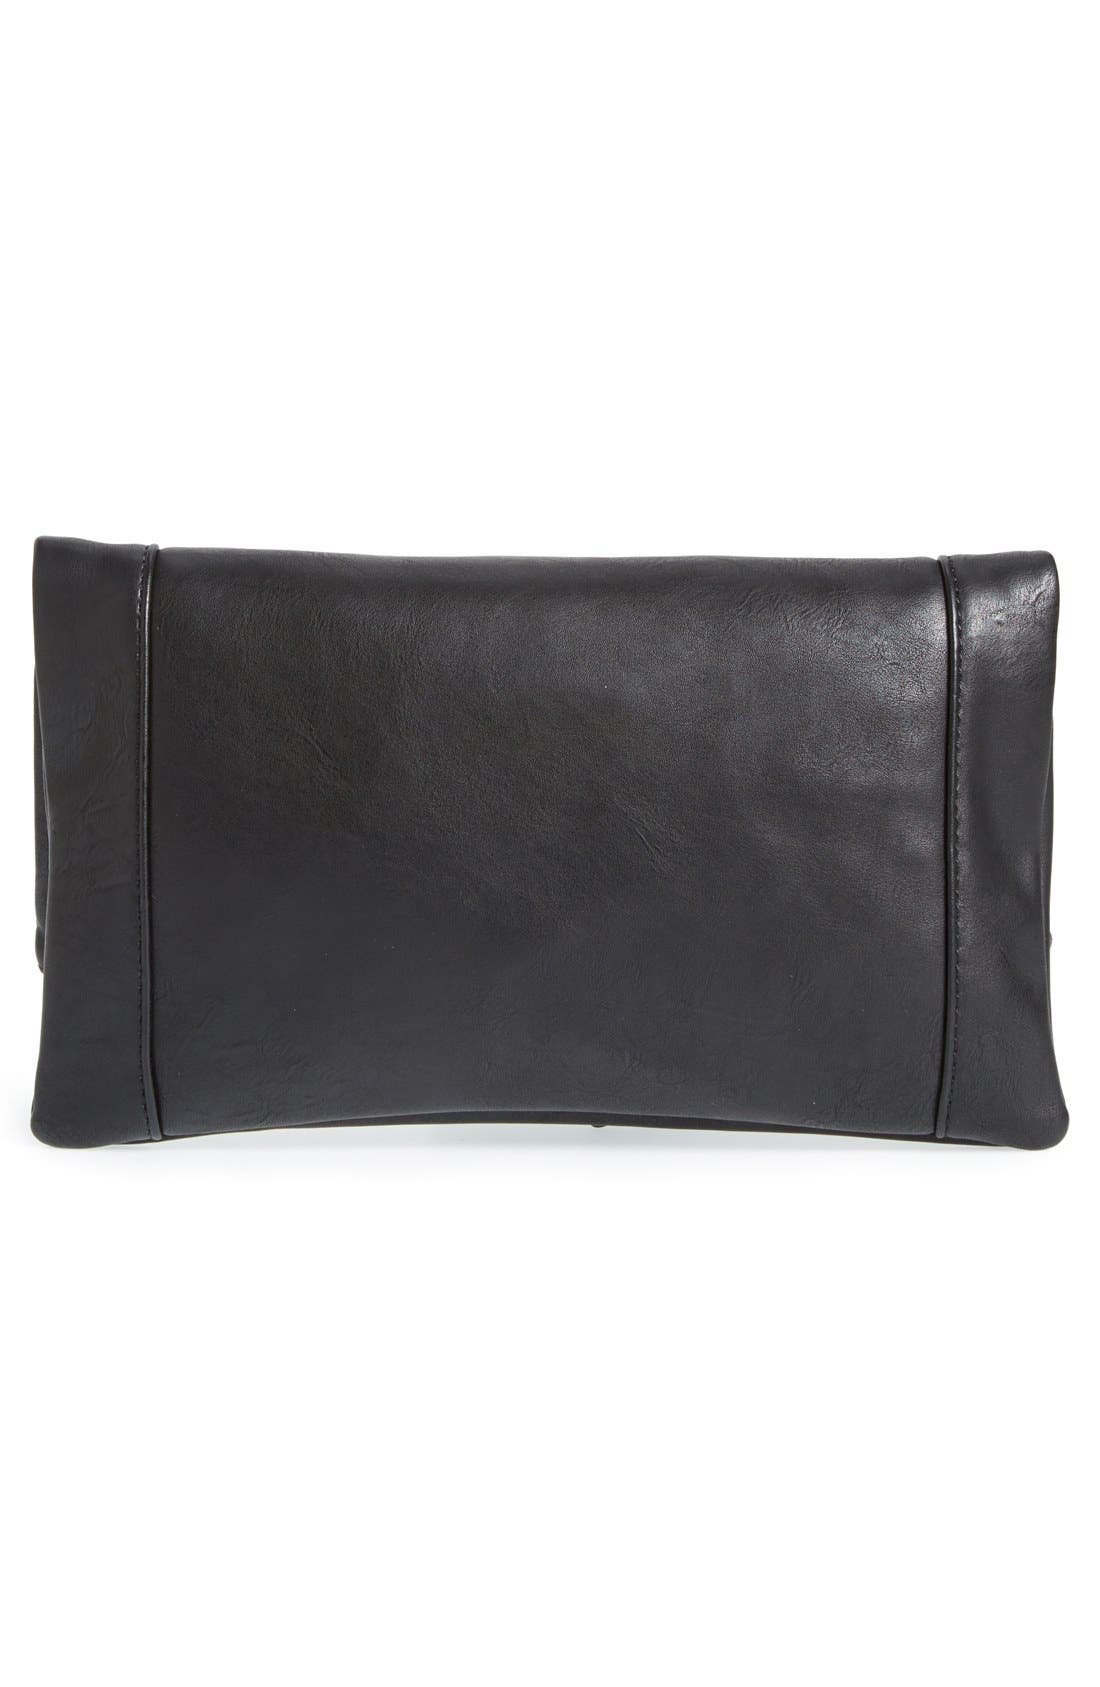 SOLE SOCIETY, Marlena Faux Leather Foldover Clutch, Alternate thumbnail 4, color, JET BLACK